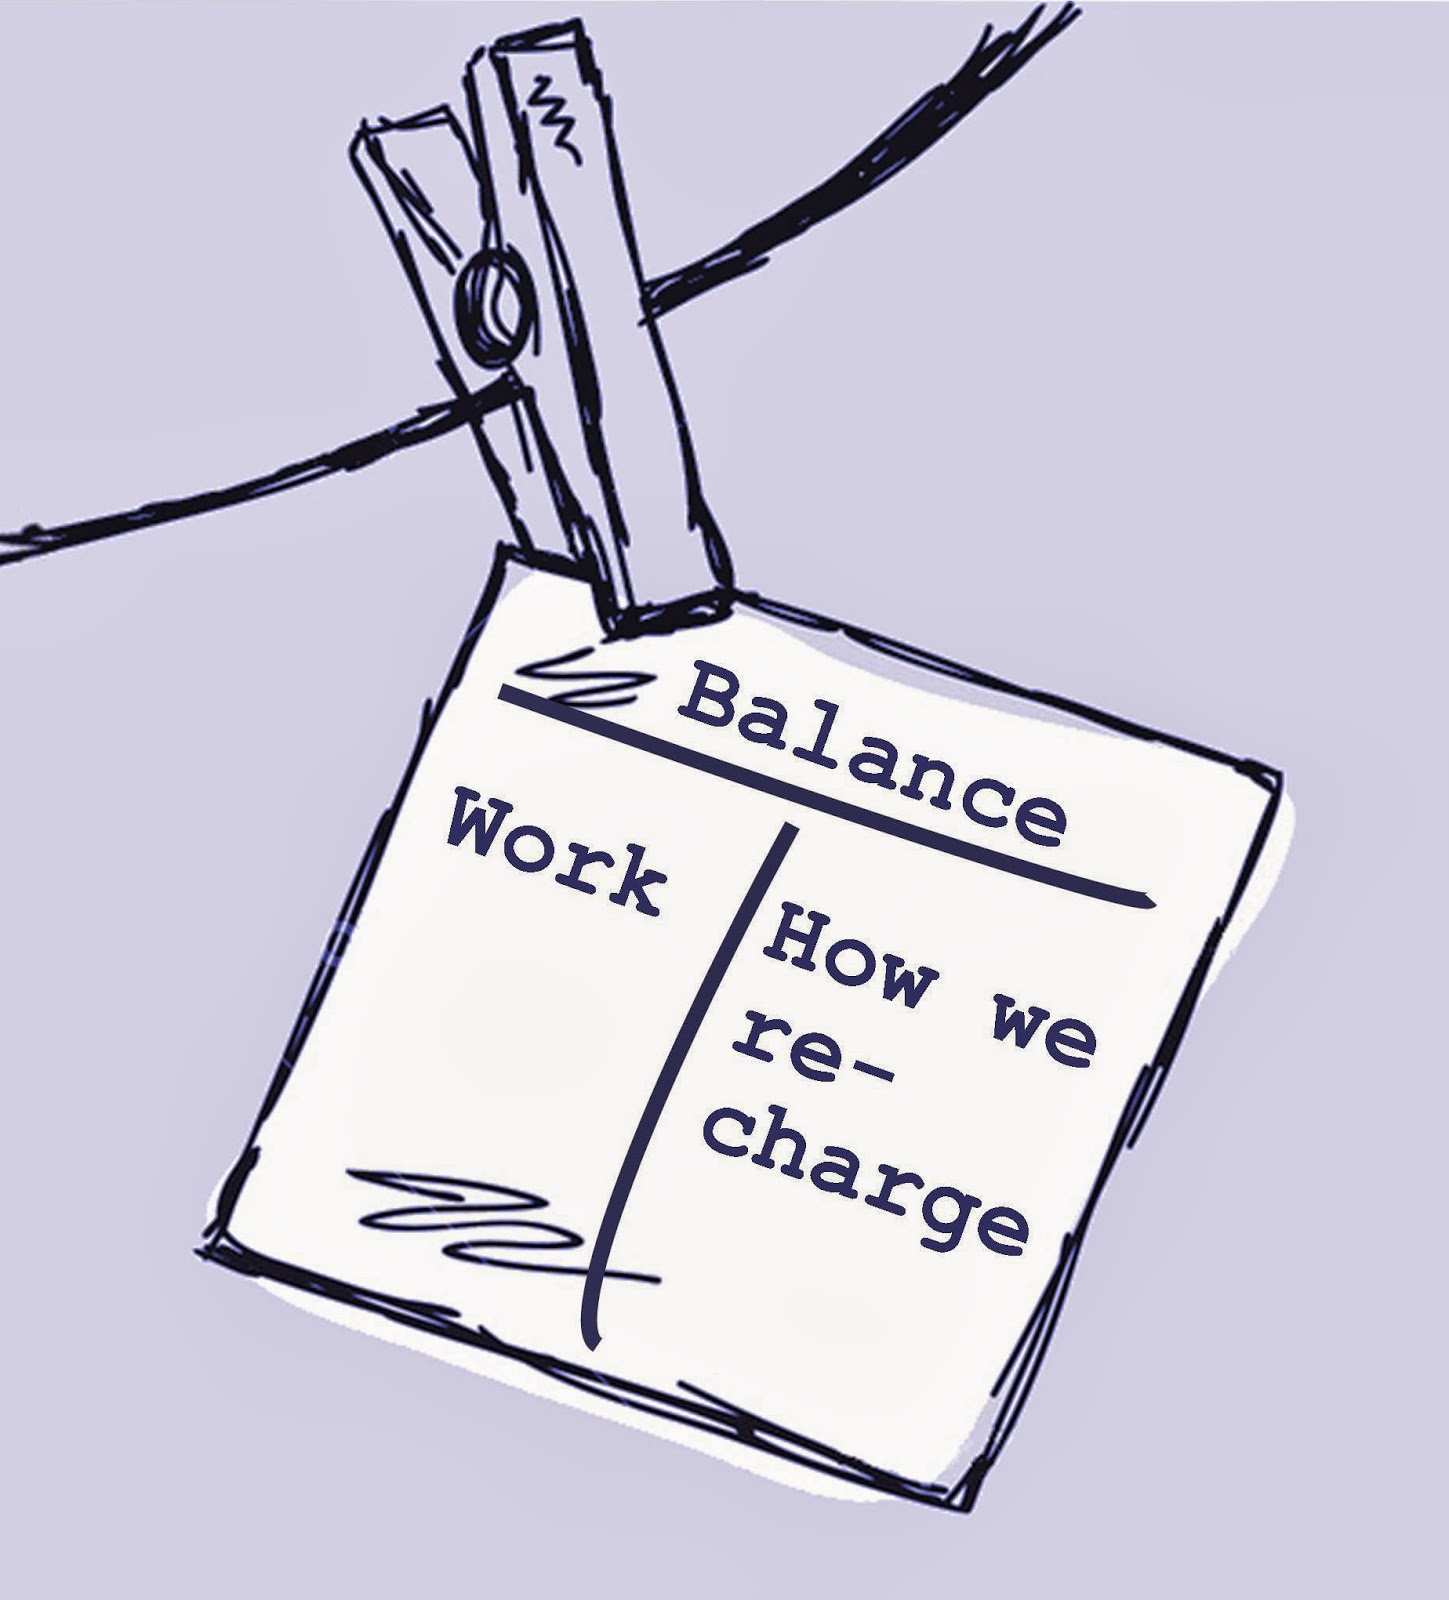 Acts of Leadership: Building a Healthy Balance (Sheet)